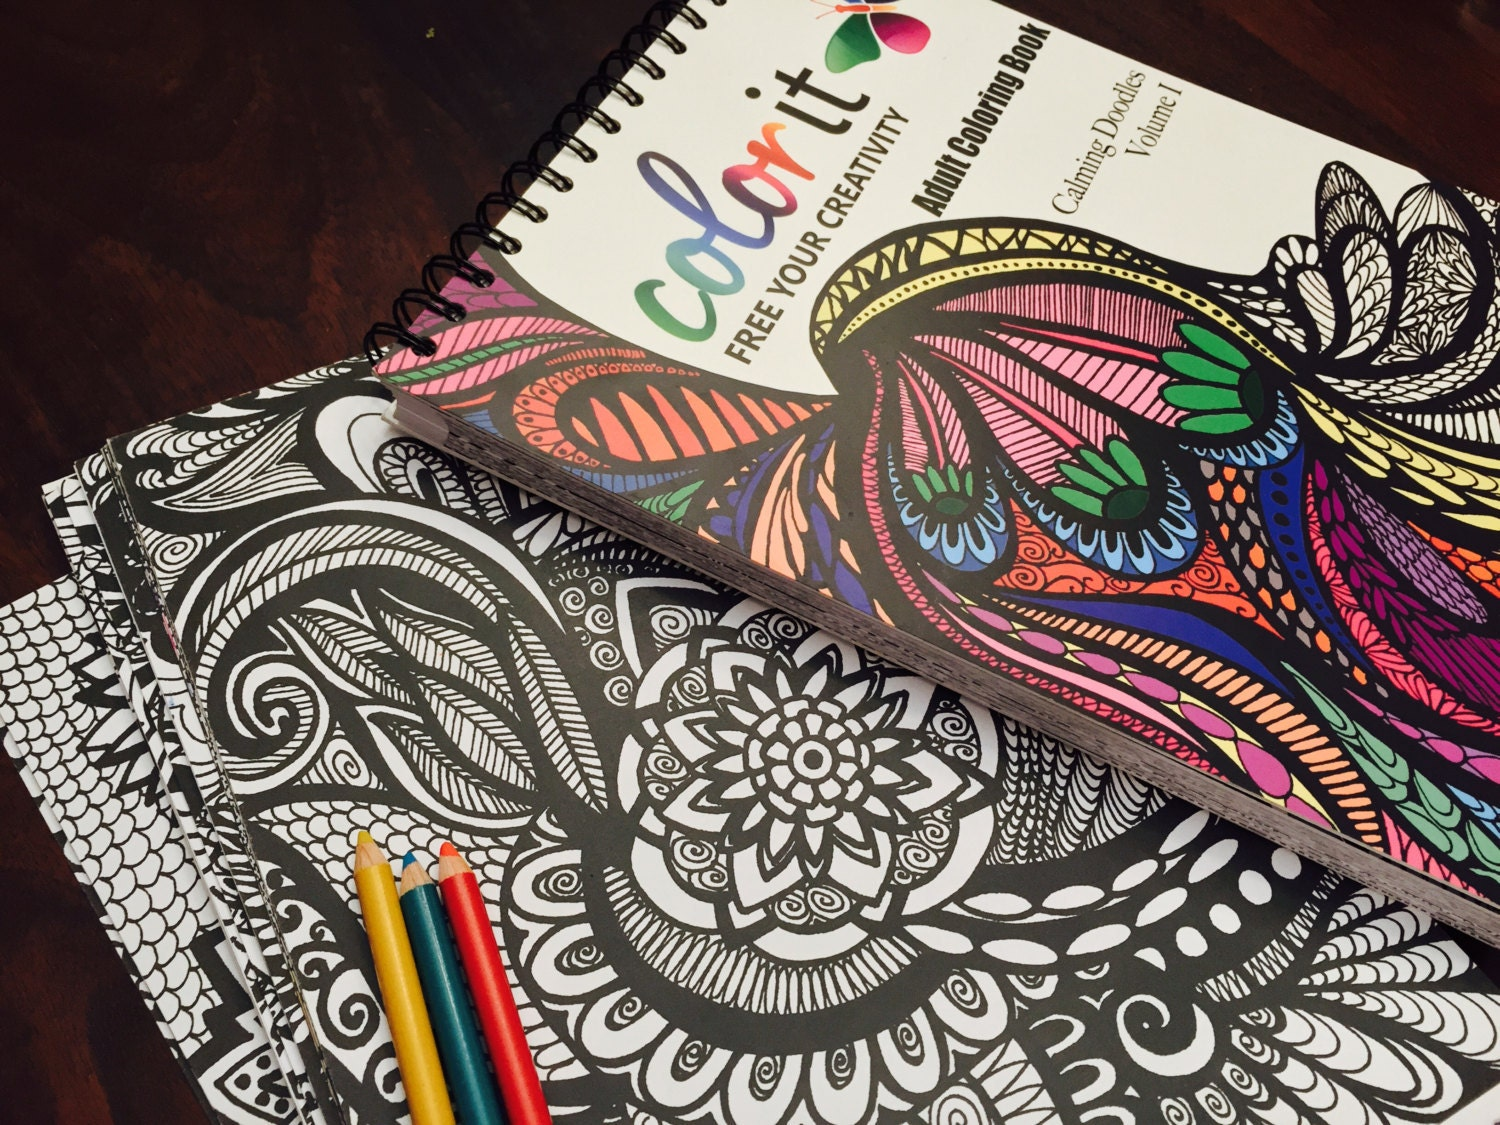 Sw swear word coloring pages etsy - 50 Original Doodles To Color Calming Doodles Volume 1 By Colorit Adult Coloring Book Hardback Spiral Binding Blotter Acid Free Paper